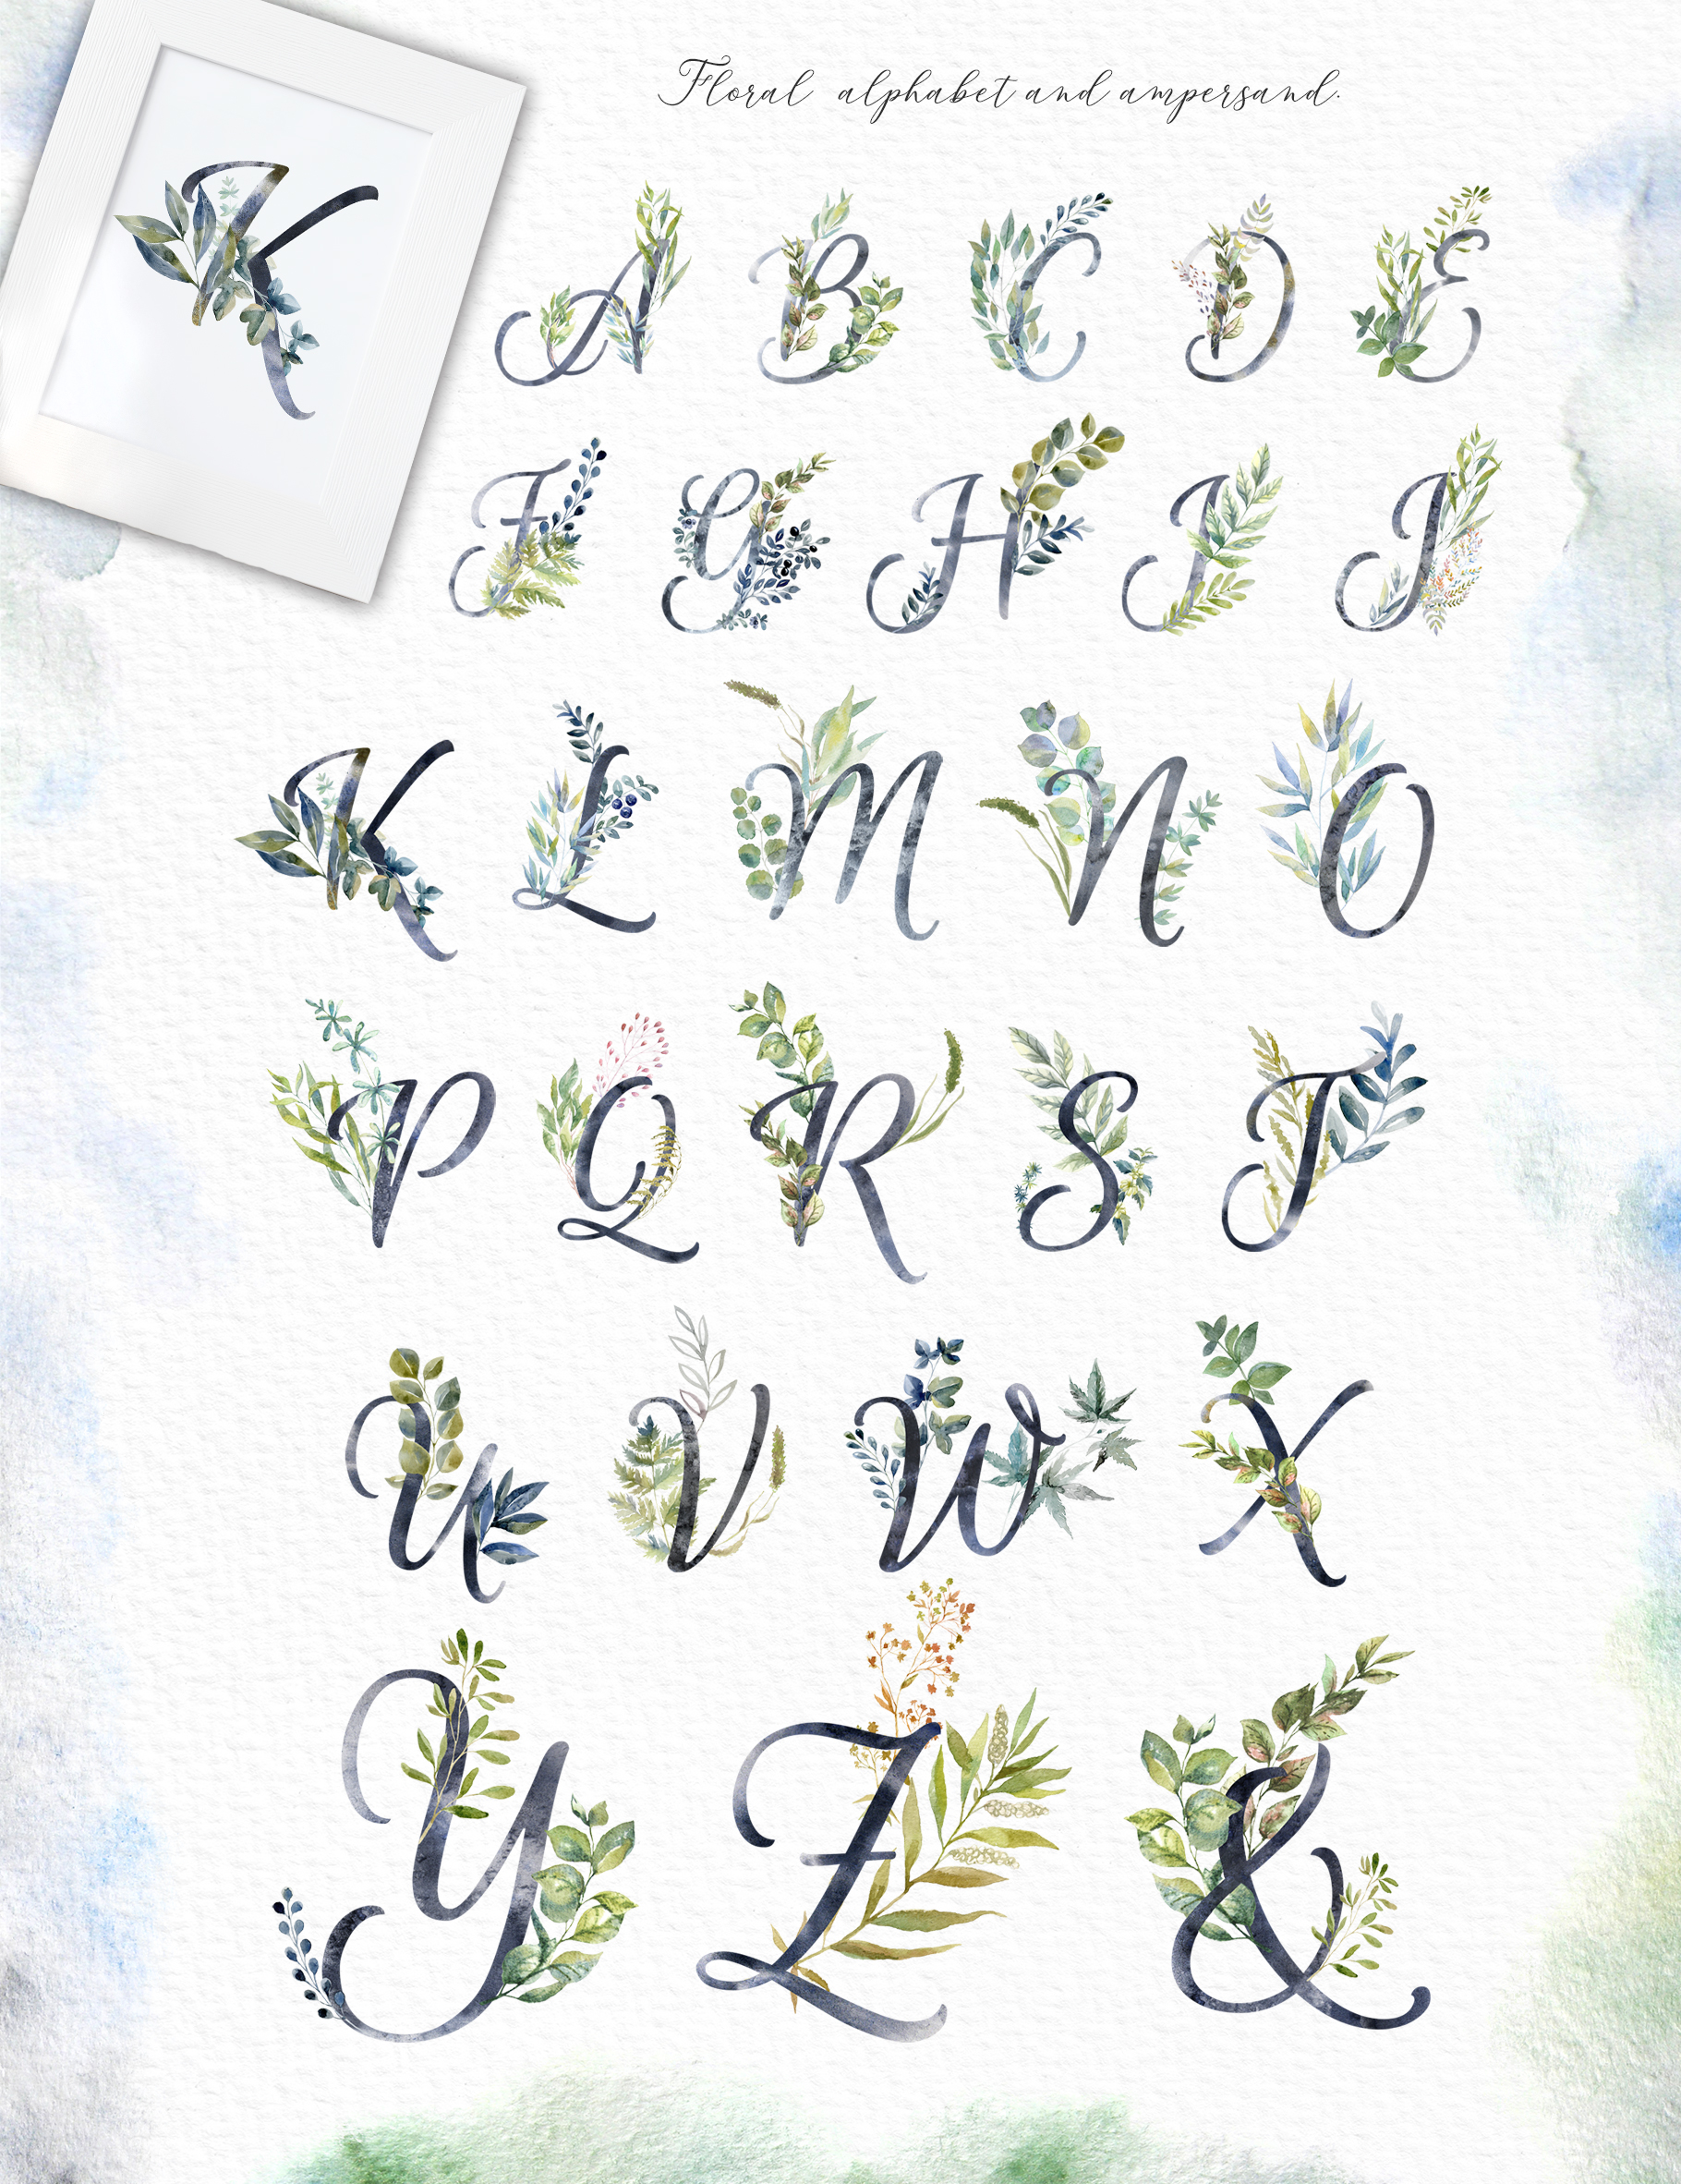 Floral Alphabets Collection. example image 2